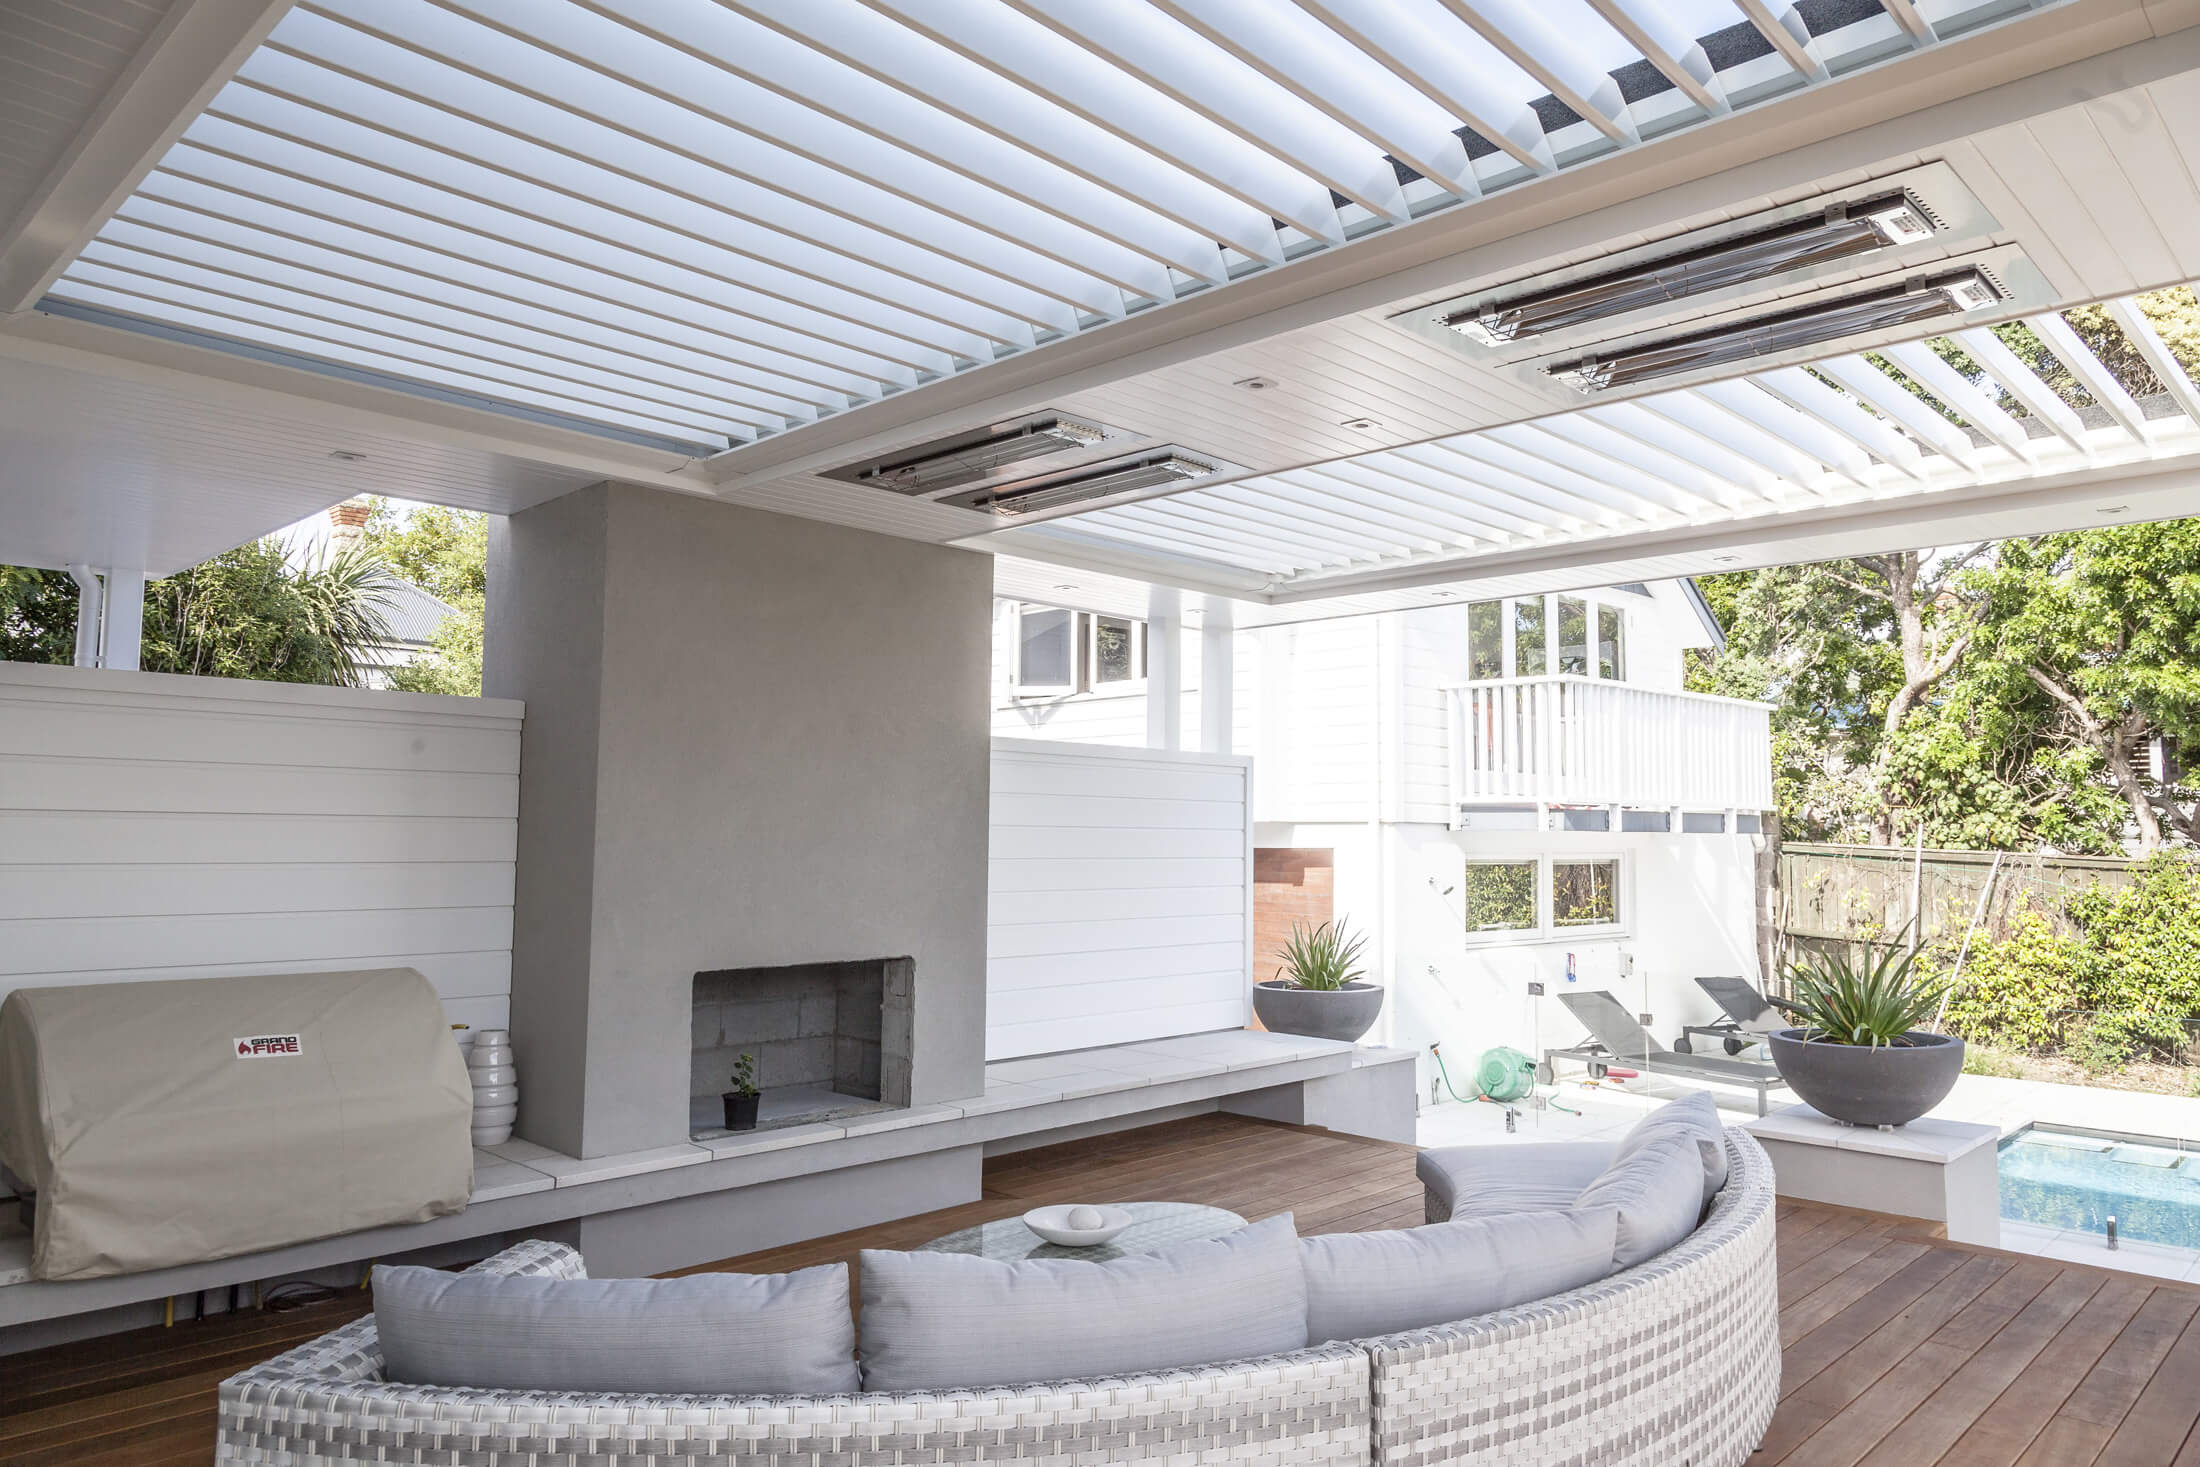 Outdoor blinds, lights and heaters